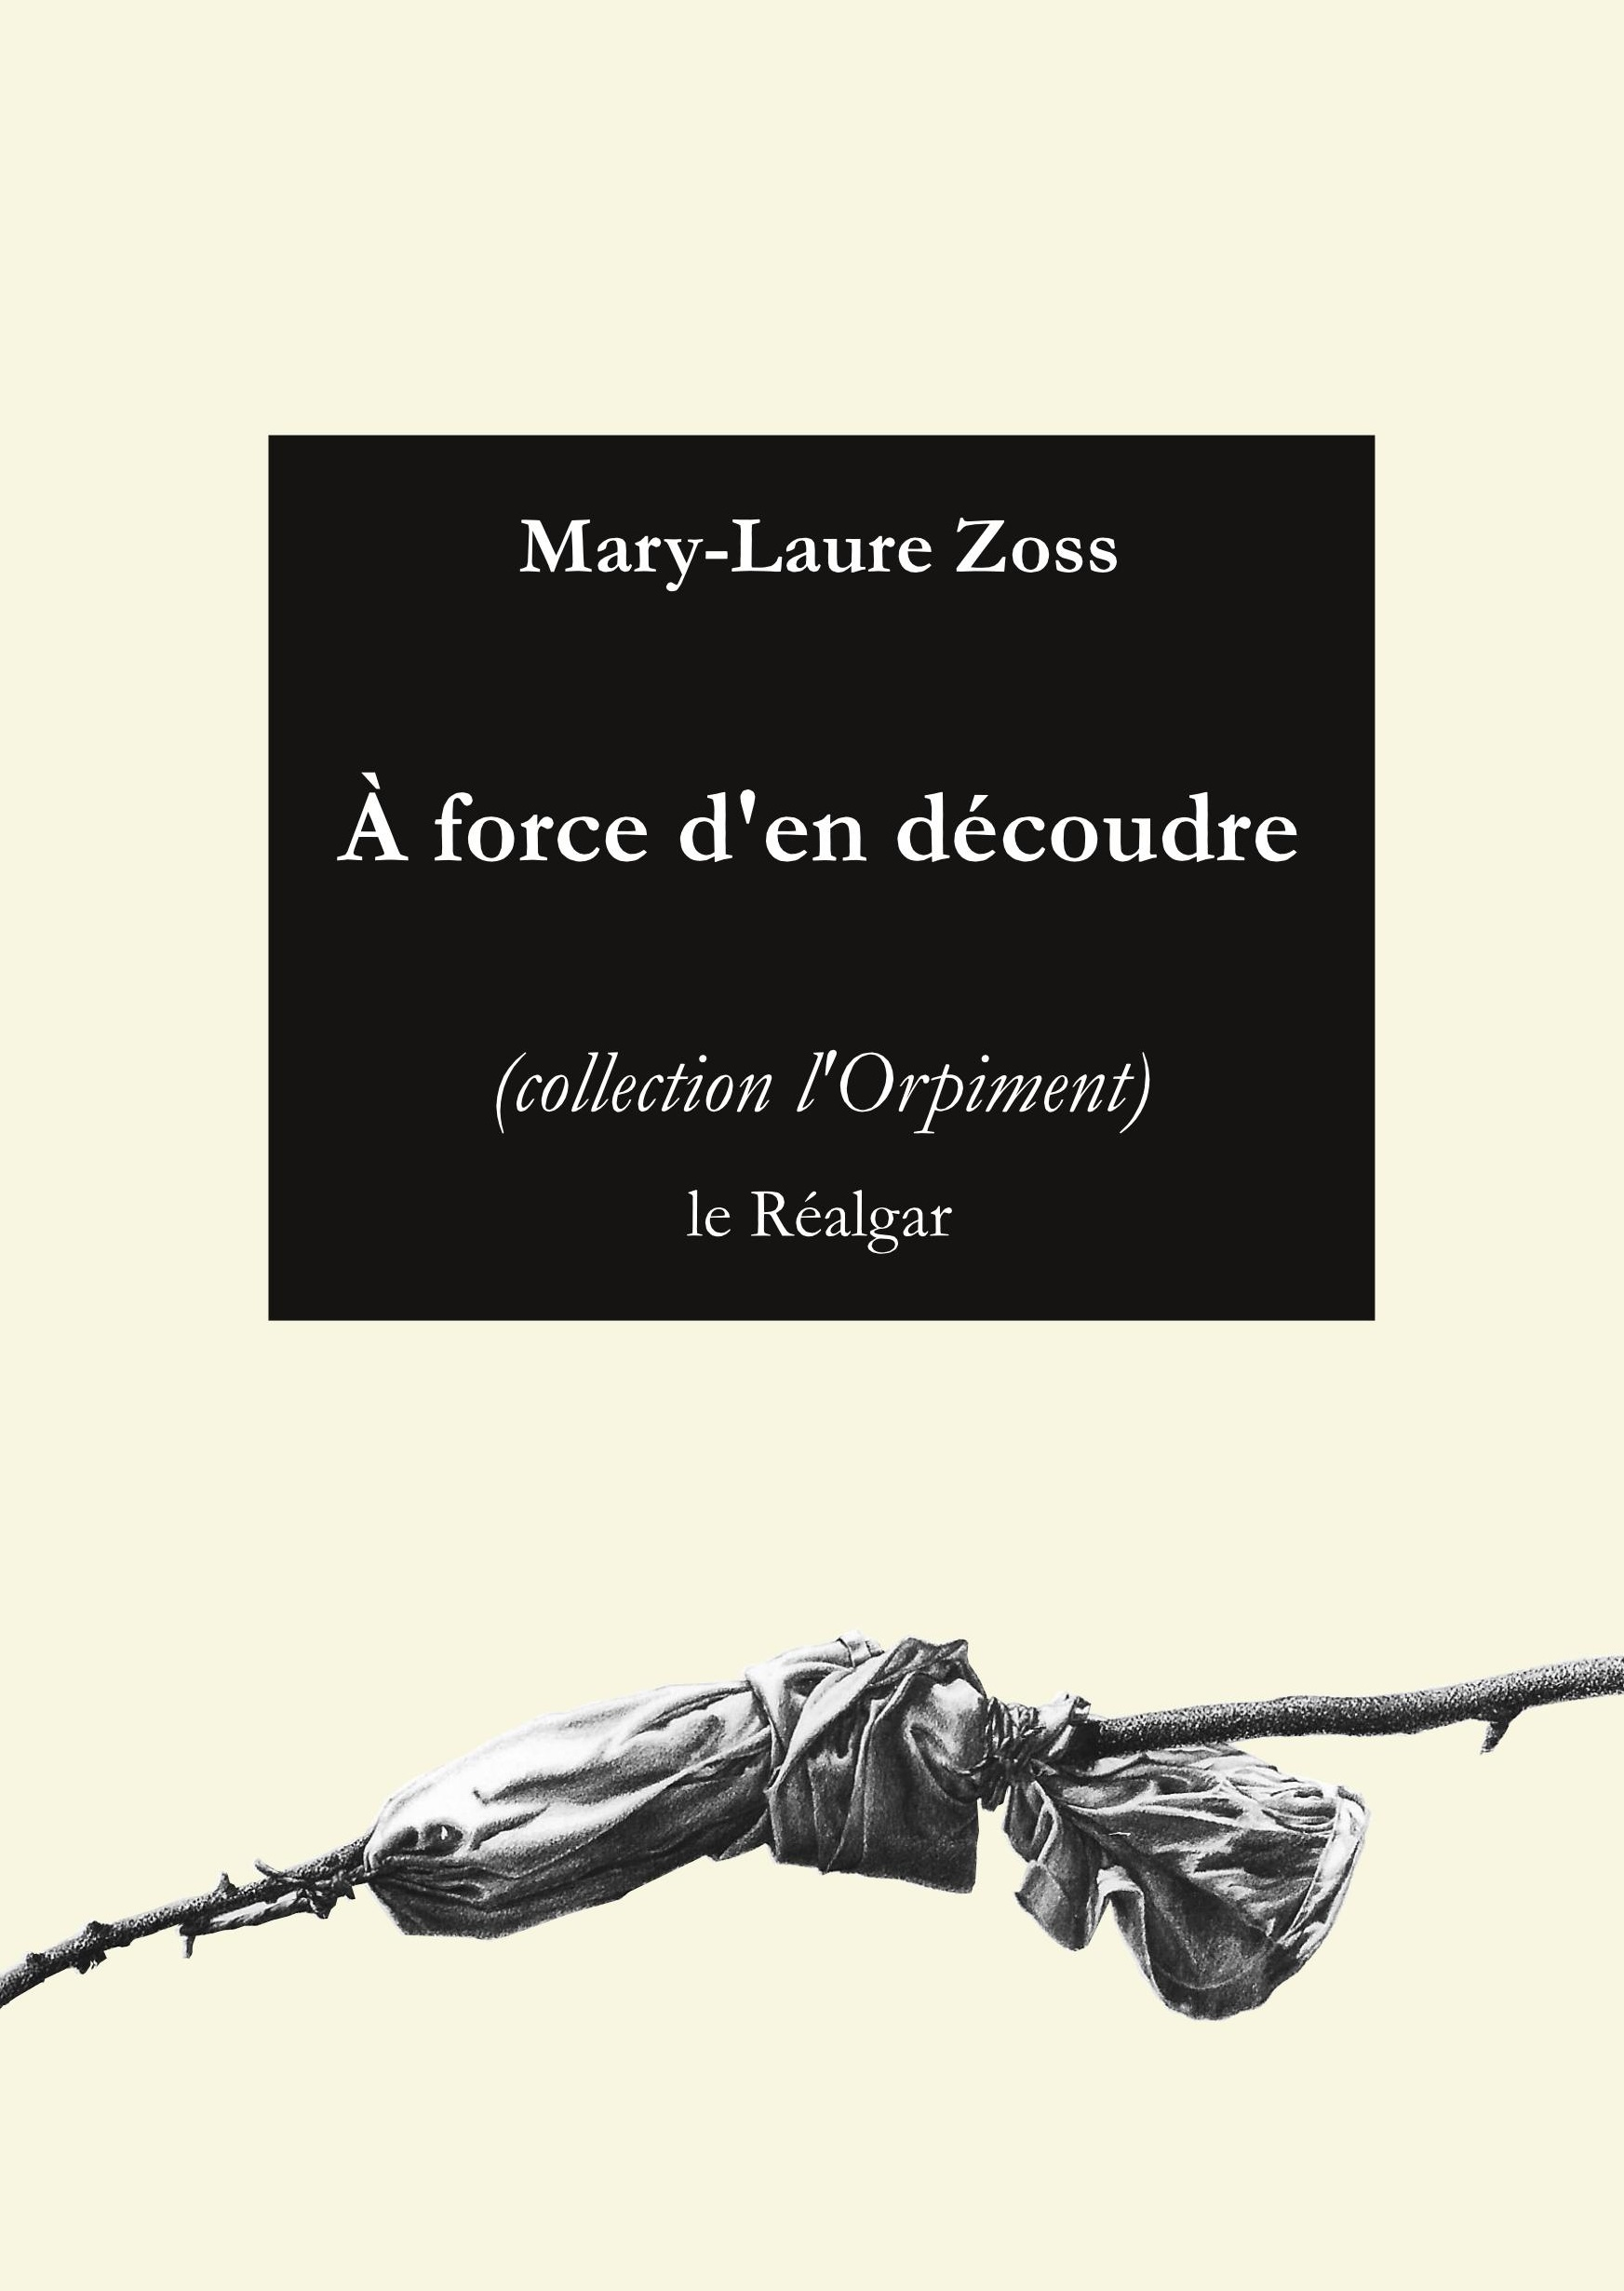 A force den decoudre Zoss